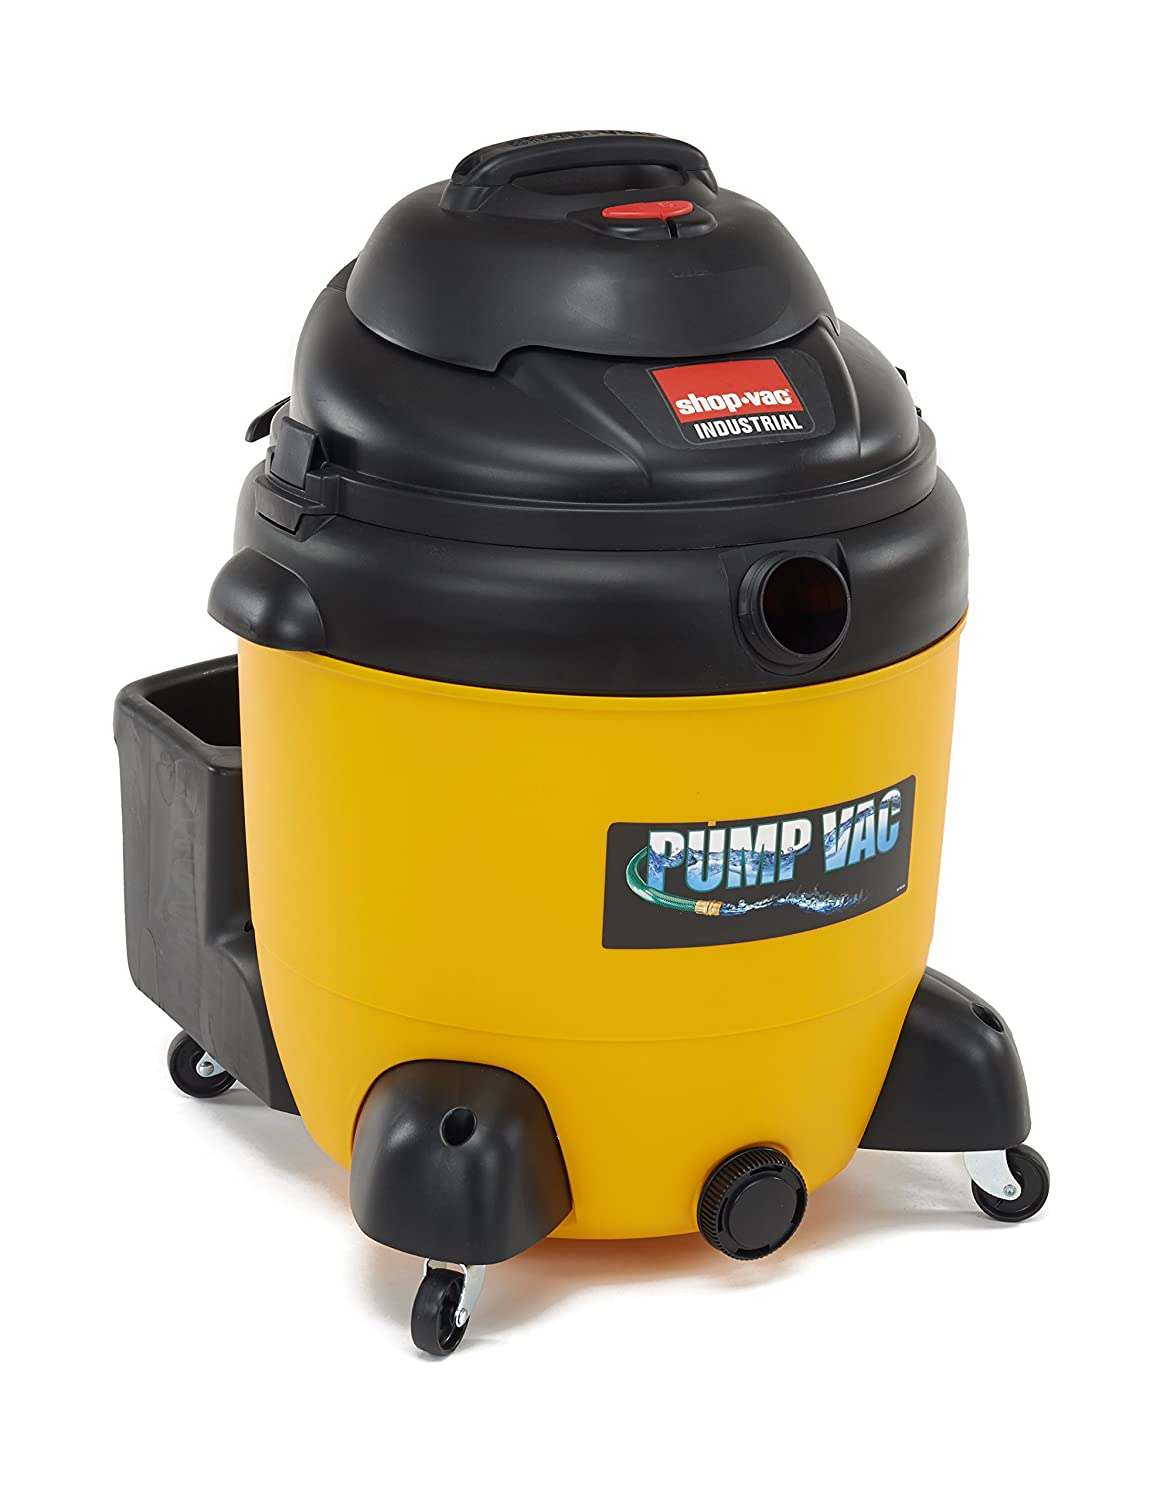 81AgKJ58F%2BL._SL1500_ amazon com shop vac 9604710 6 5 peak hp wet dry vacuum with built Shop-Vac Brand Replacement Parts at highcare.asia